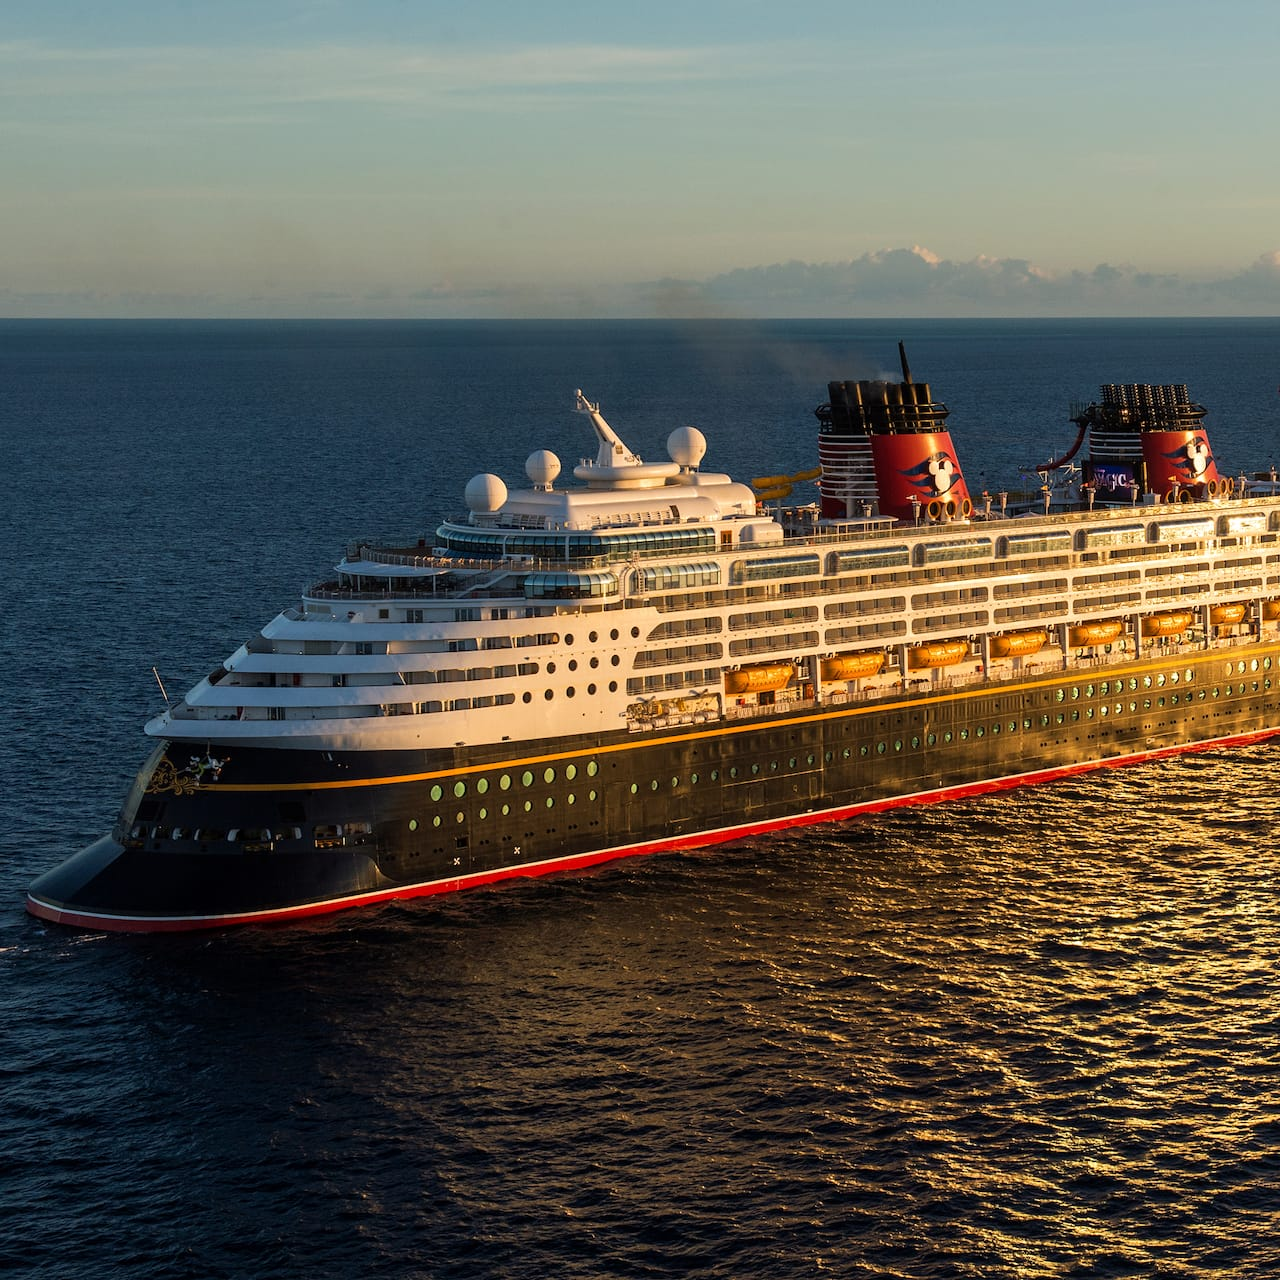 The Disney Cruise Line cruise ship, Disney Magic, sails across the sea